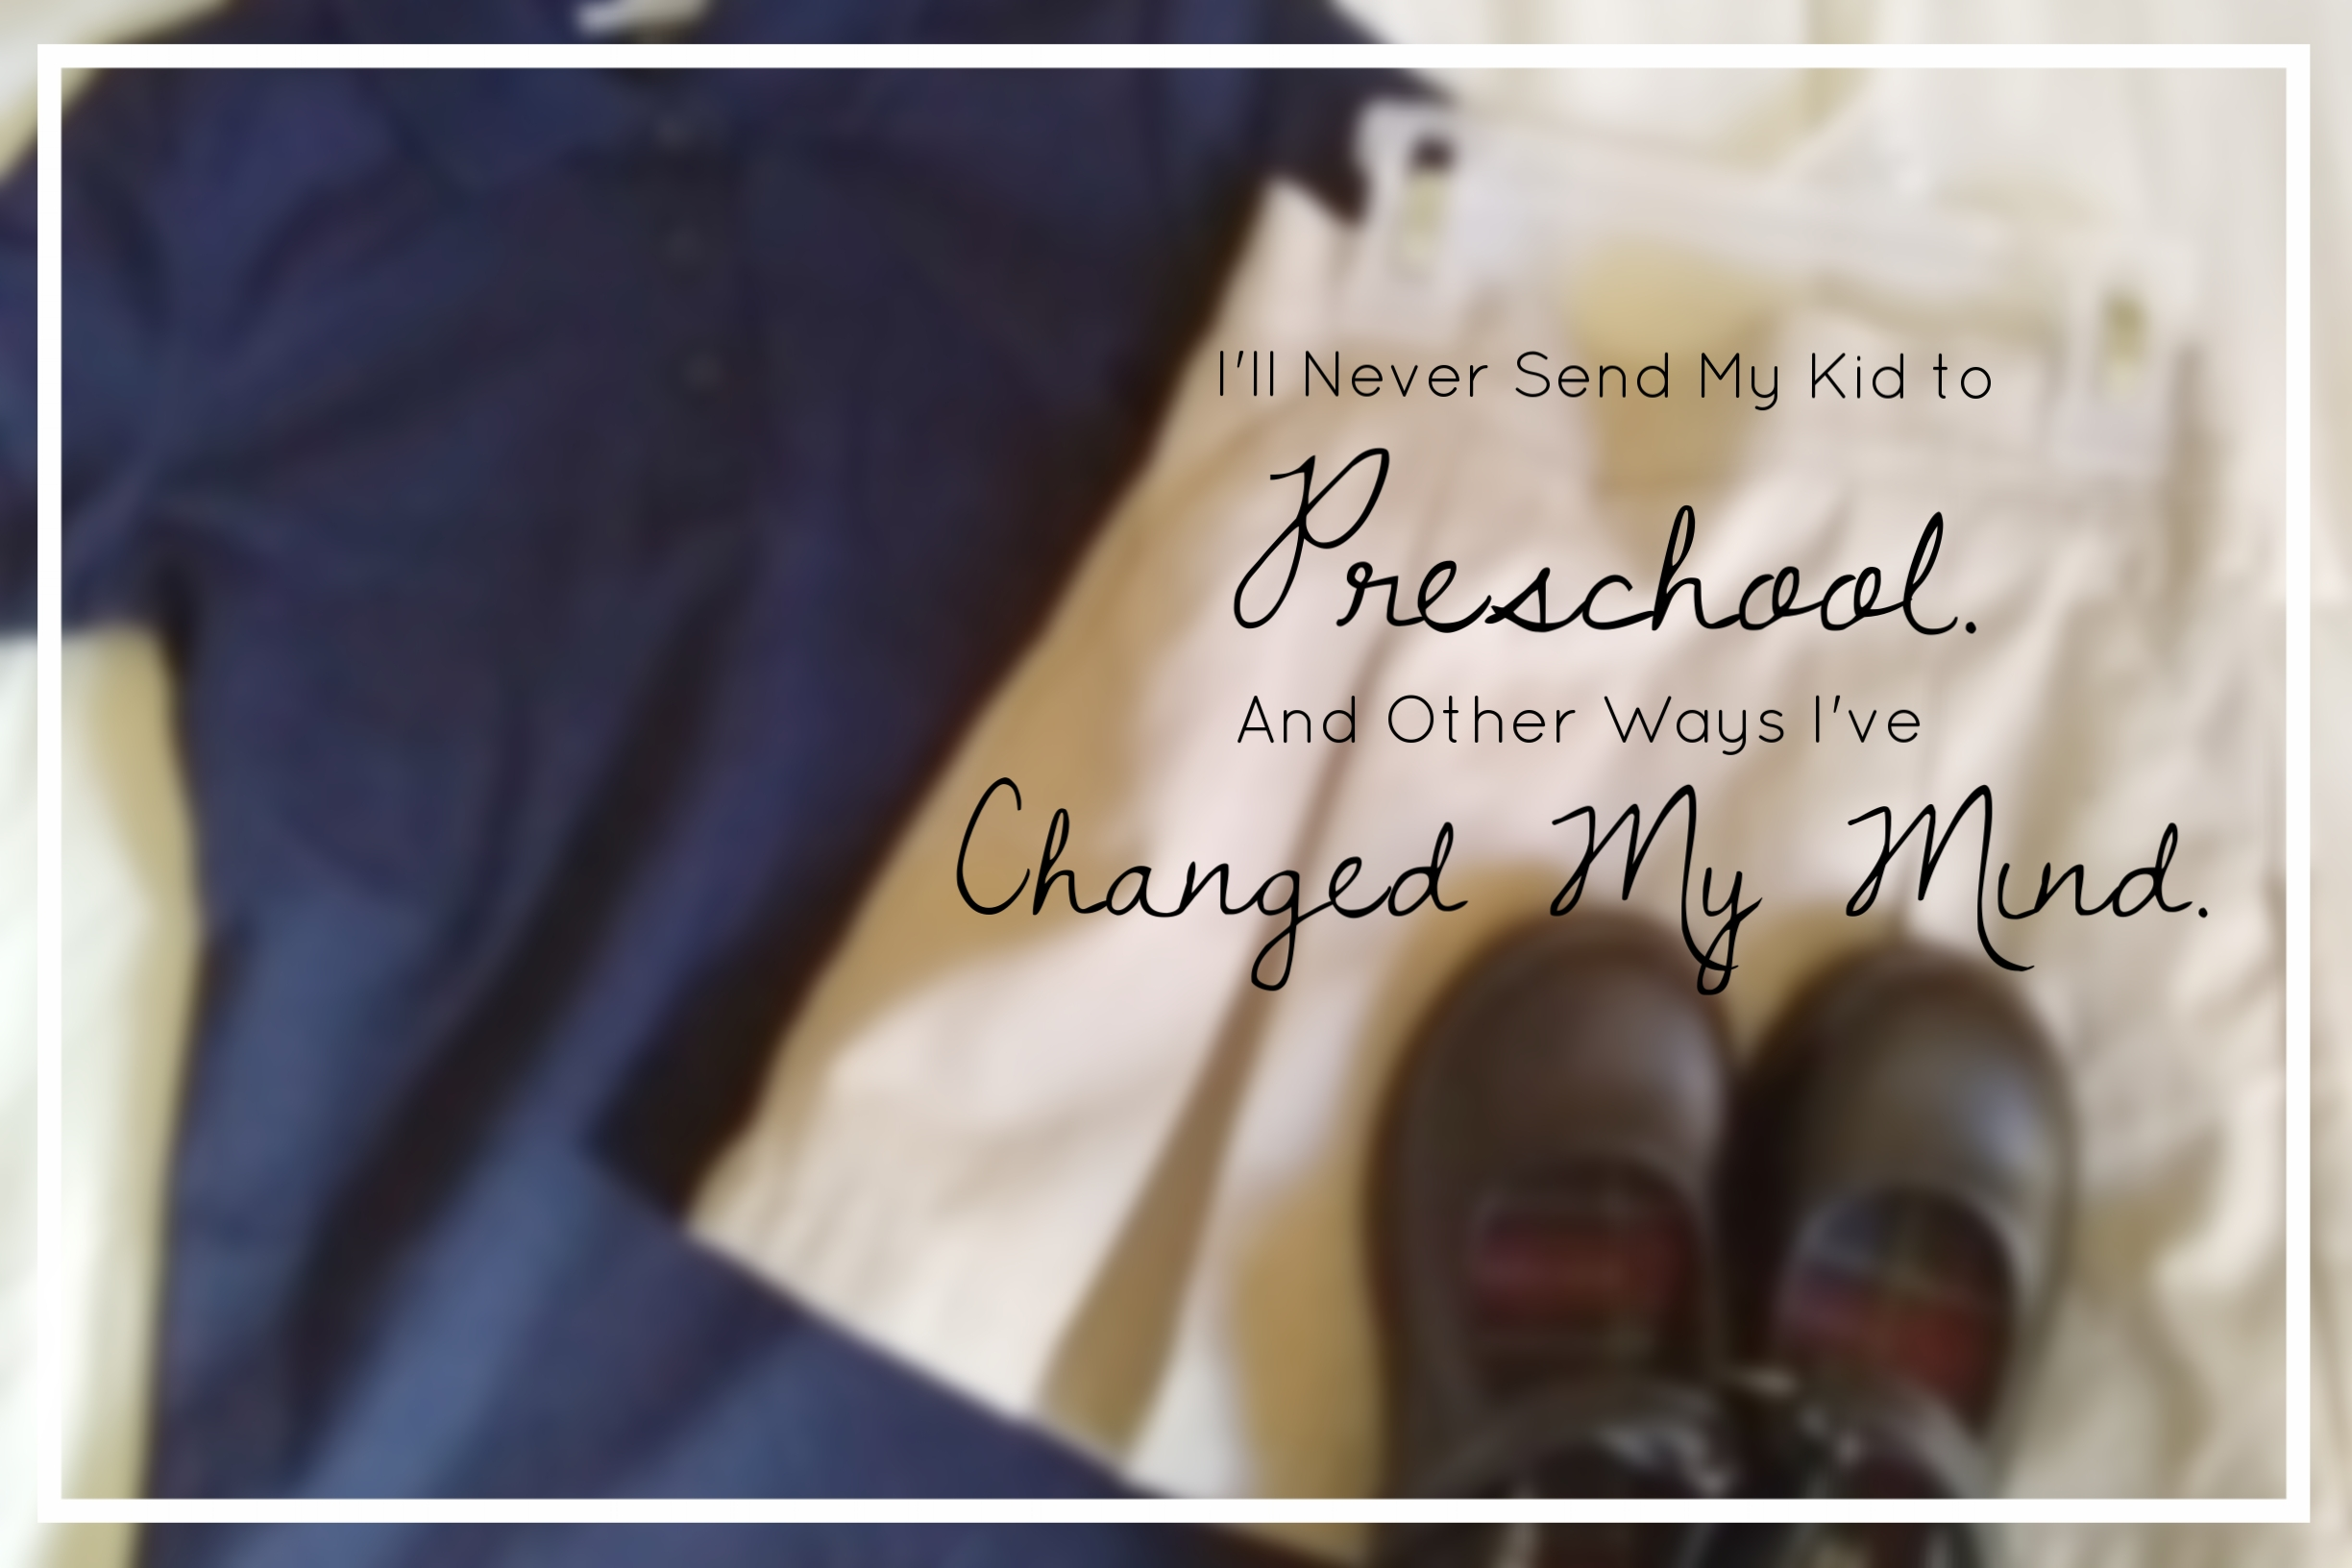 {This week's series: #SchoolDazed.     I wrote this article before the school year began. Via social media this week, I'll share more about how we came to choose a school, as well as our transition to the school year. But today, I want to simply give parents permission to not have their kids' lives all figured out. In the anxious age that we live in, it's freeing to remember that parenting will involve a healthy dose of trial and error along the way, including the ways we choose to educate our children.    Note: this topic was suggested to me by a reader. If you would like to suggest a topic for a weeklong series, I would love to hear your ideas!}